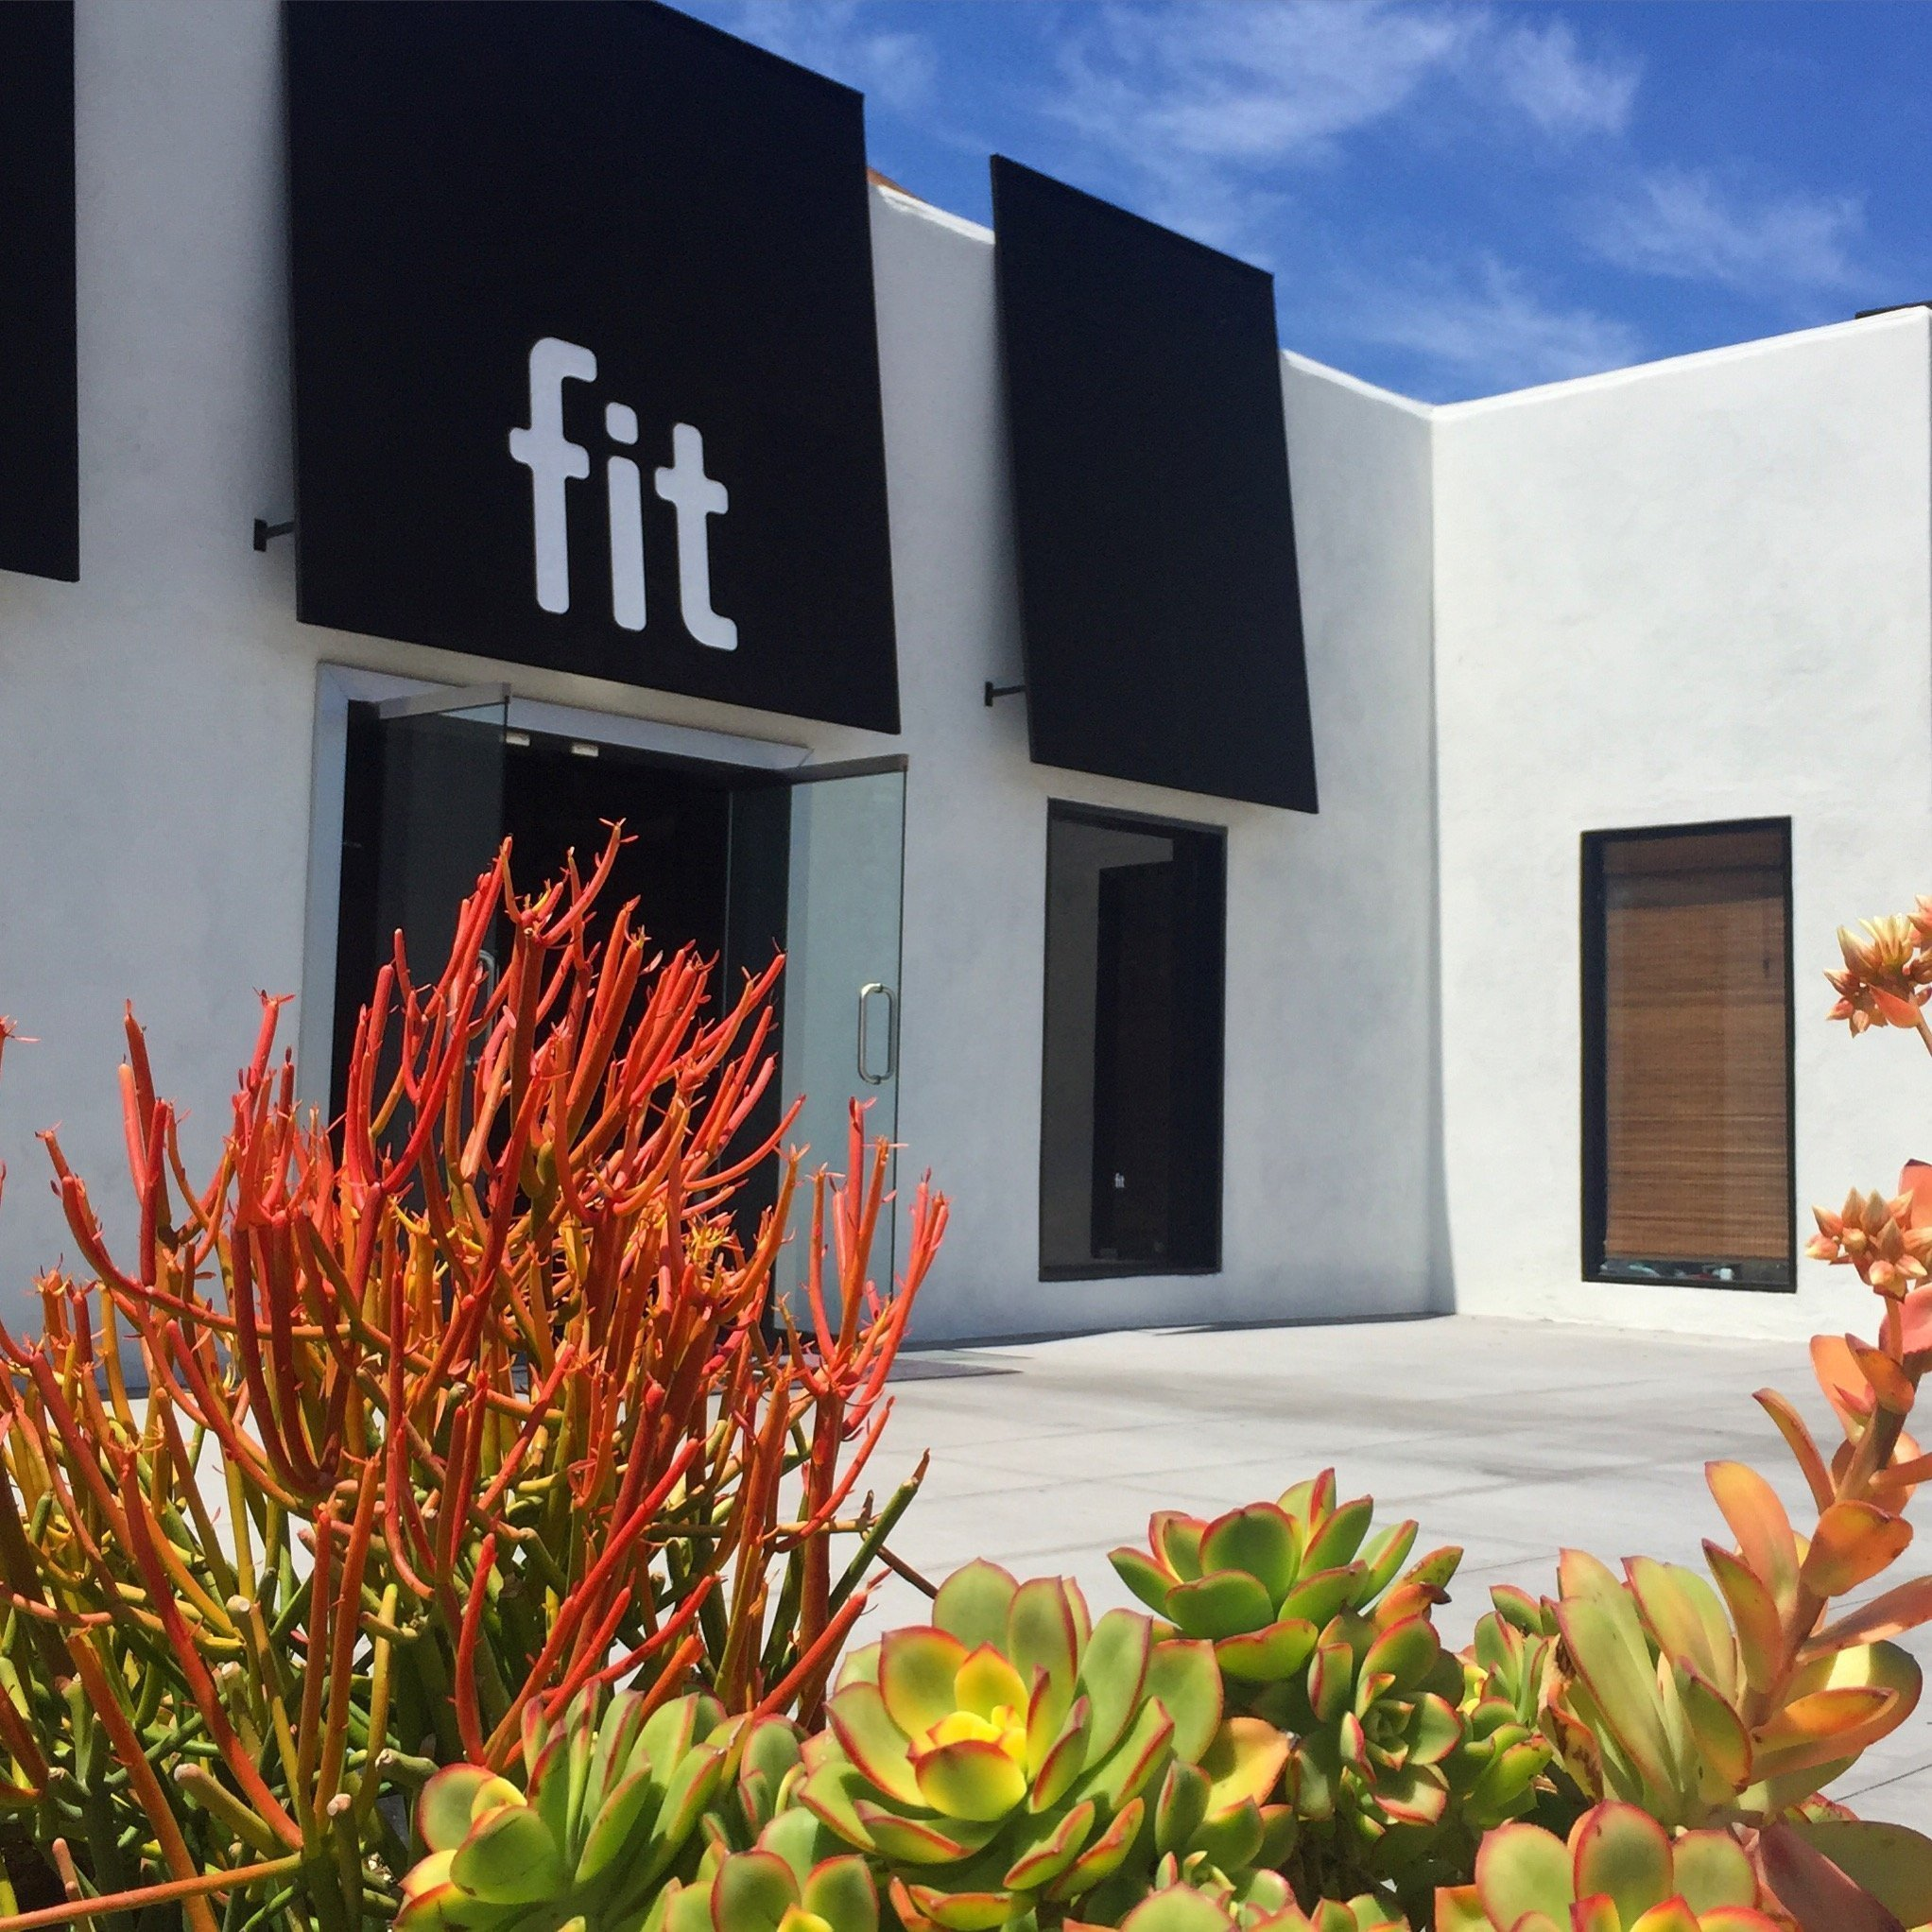 Fit Athletic Club In Solana Beach Helps Clients Shape An All Around Healthy Lifestyle Del Mar Times